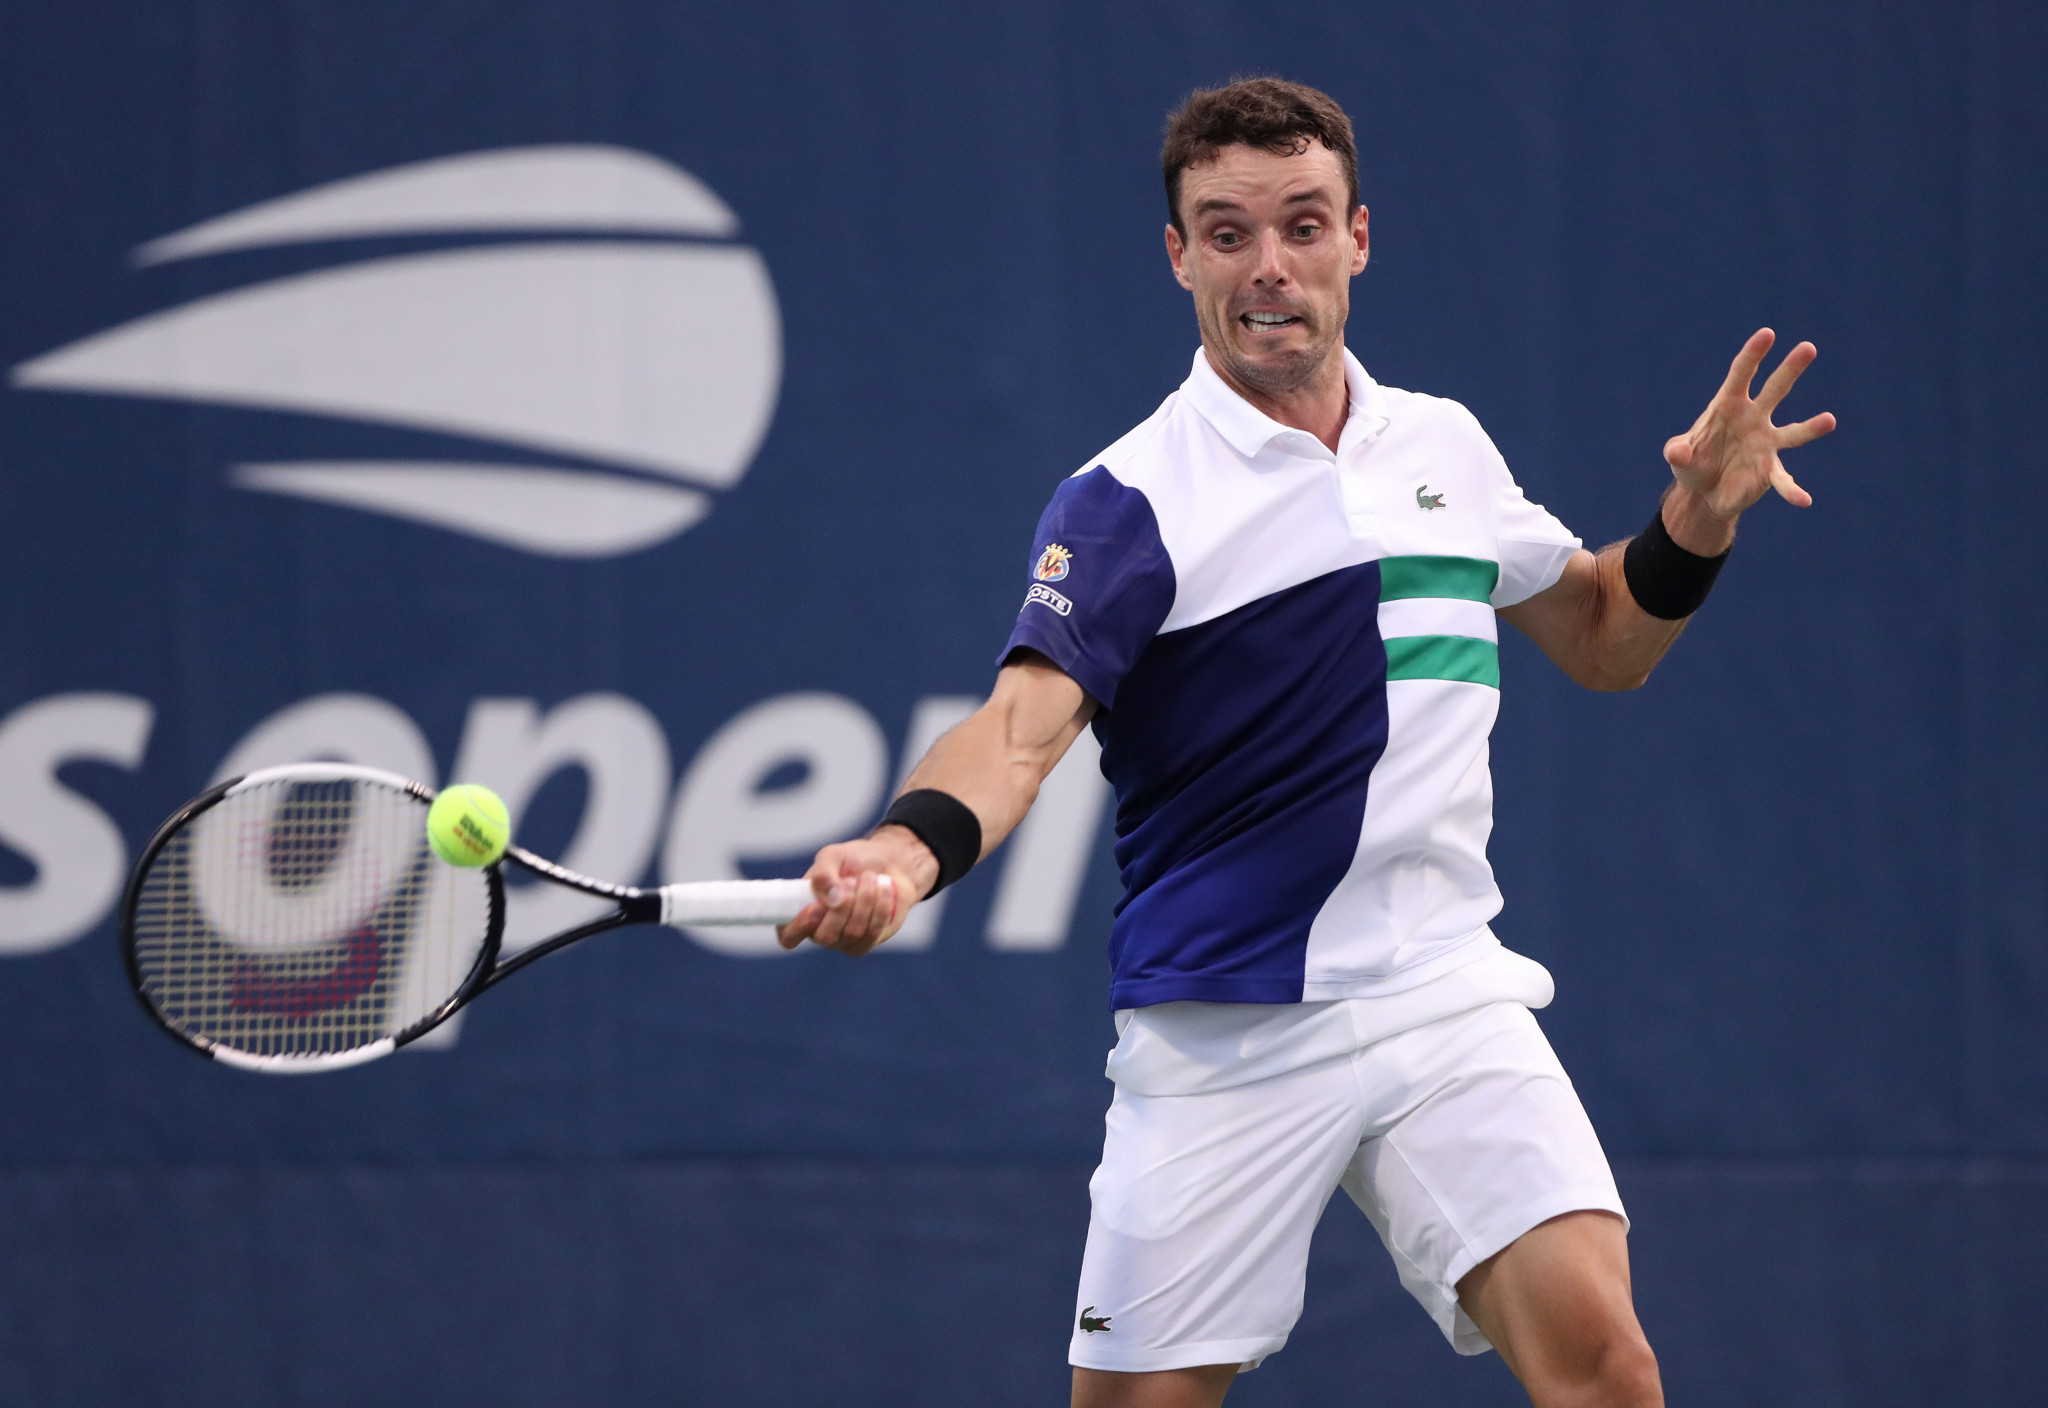 Roberto Bautista-Agut, the eighth seed, beat Miomir Kecmanovic of Serbia in four sets to reach the third round ©Getty Images